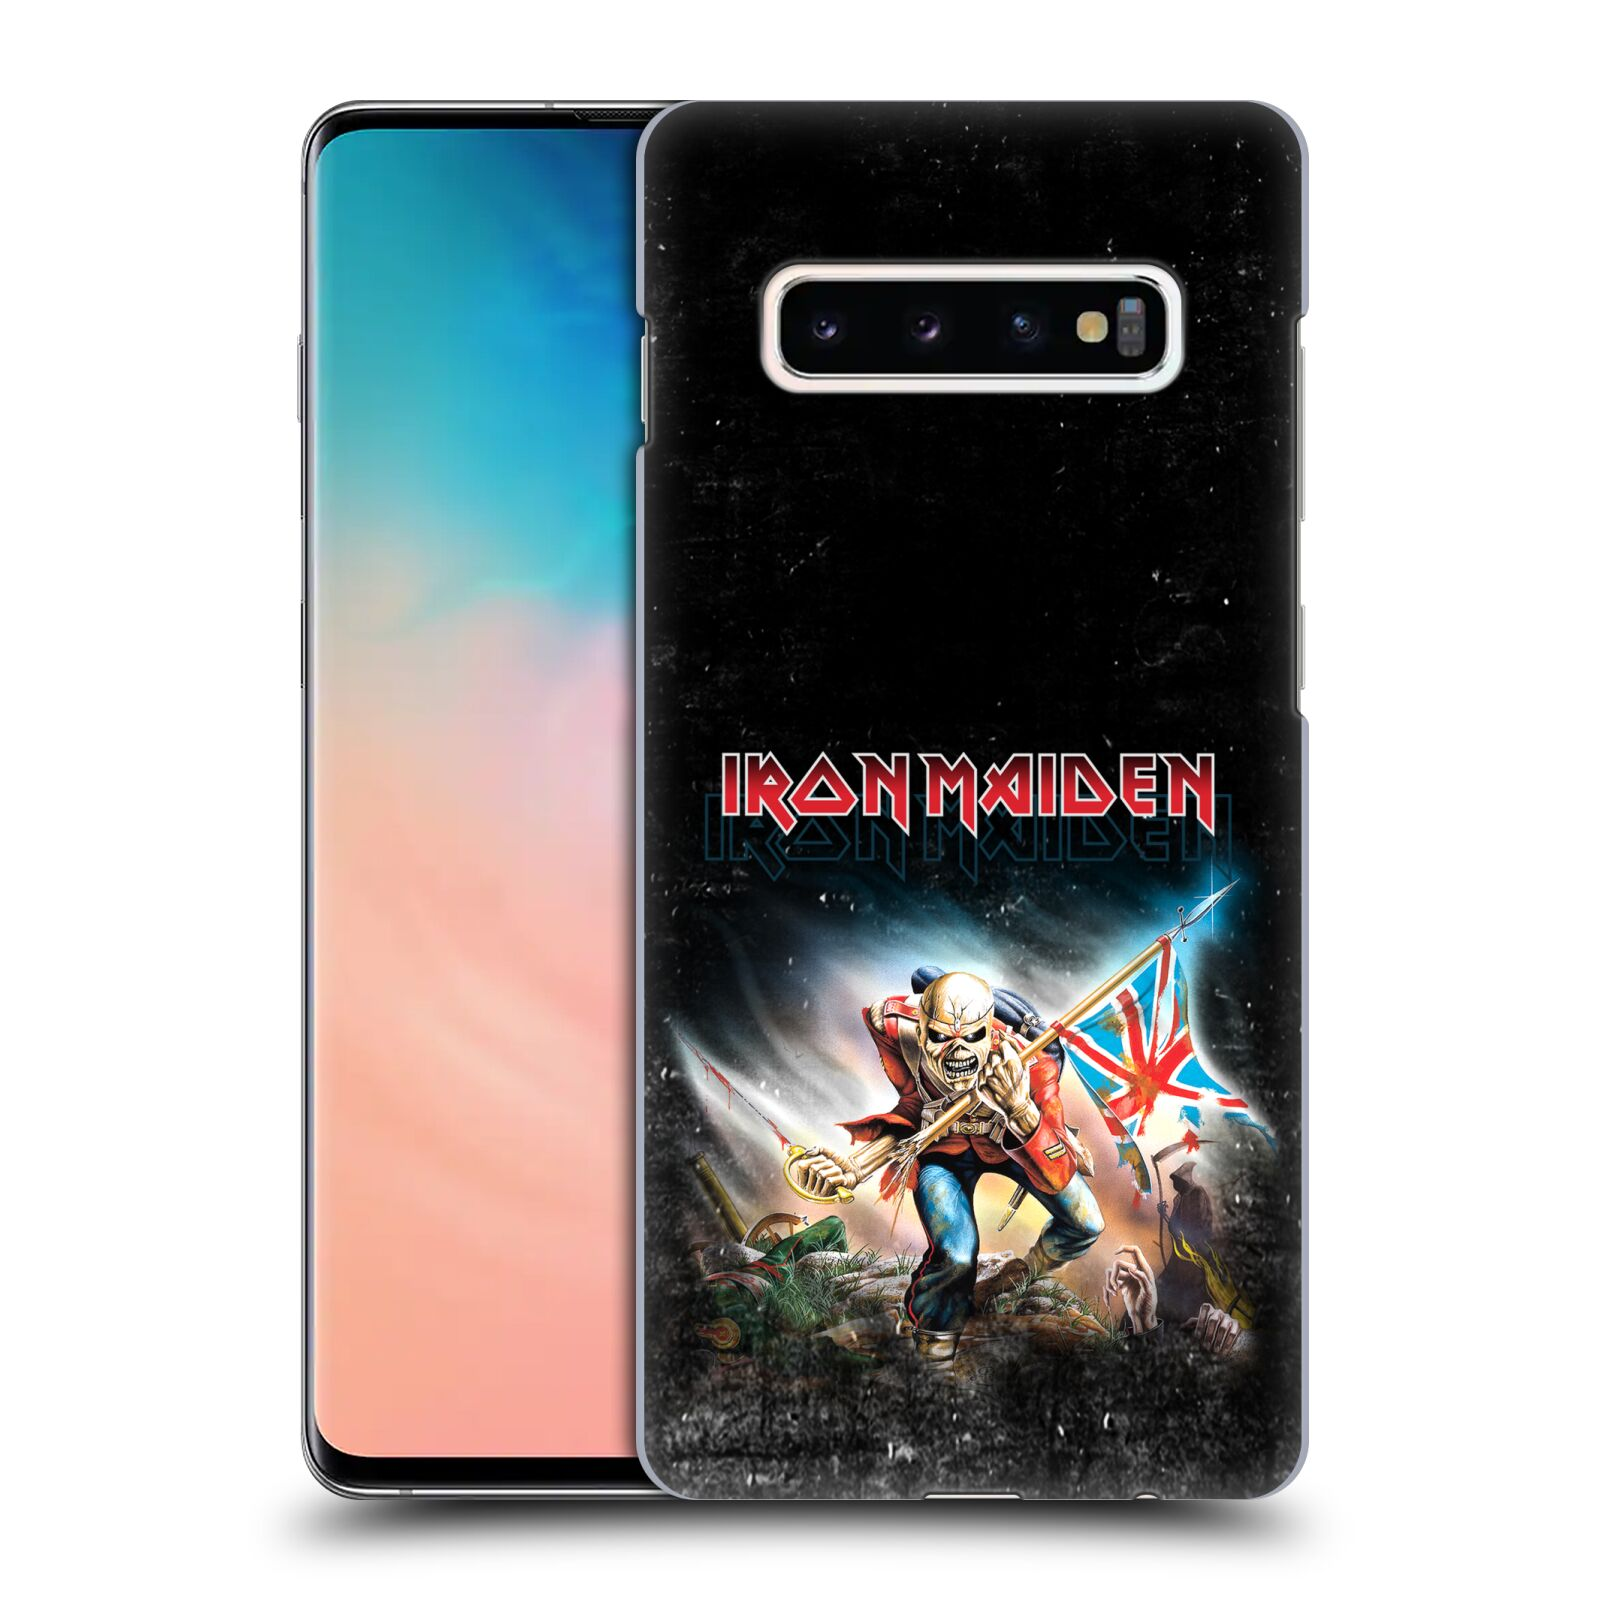 Plastové pouzdro na mobil Samsung Galaxy S10 Plus - Head Case - Iron Maiden - Trooper 2016